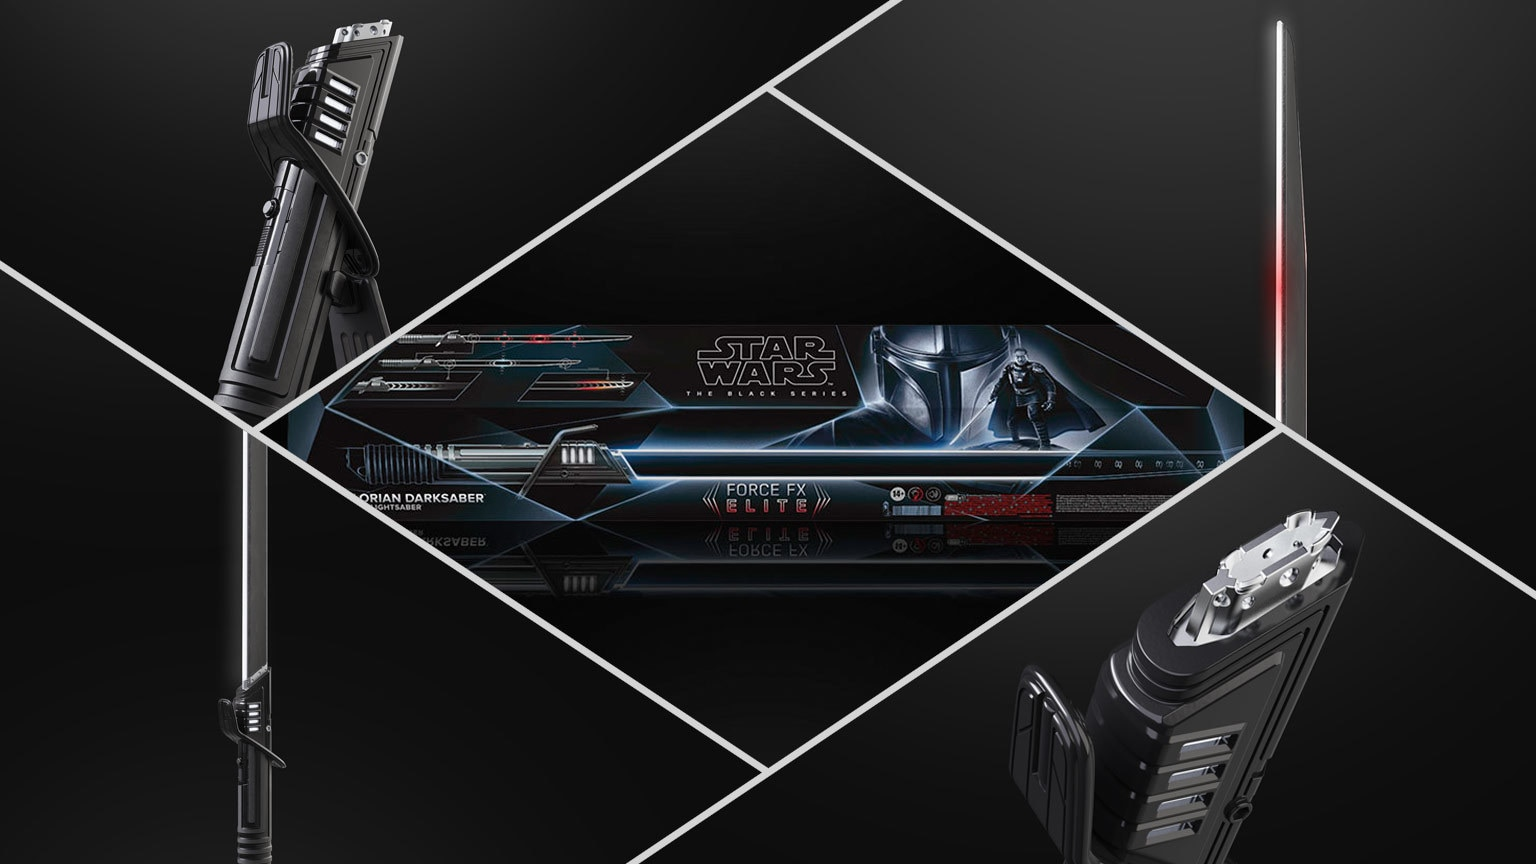 5 Illuminating Facts About the Making of Hasbro's Force FX Elite Darksaber